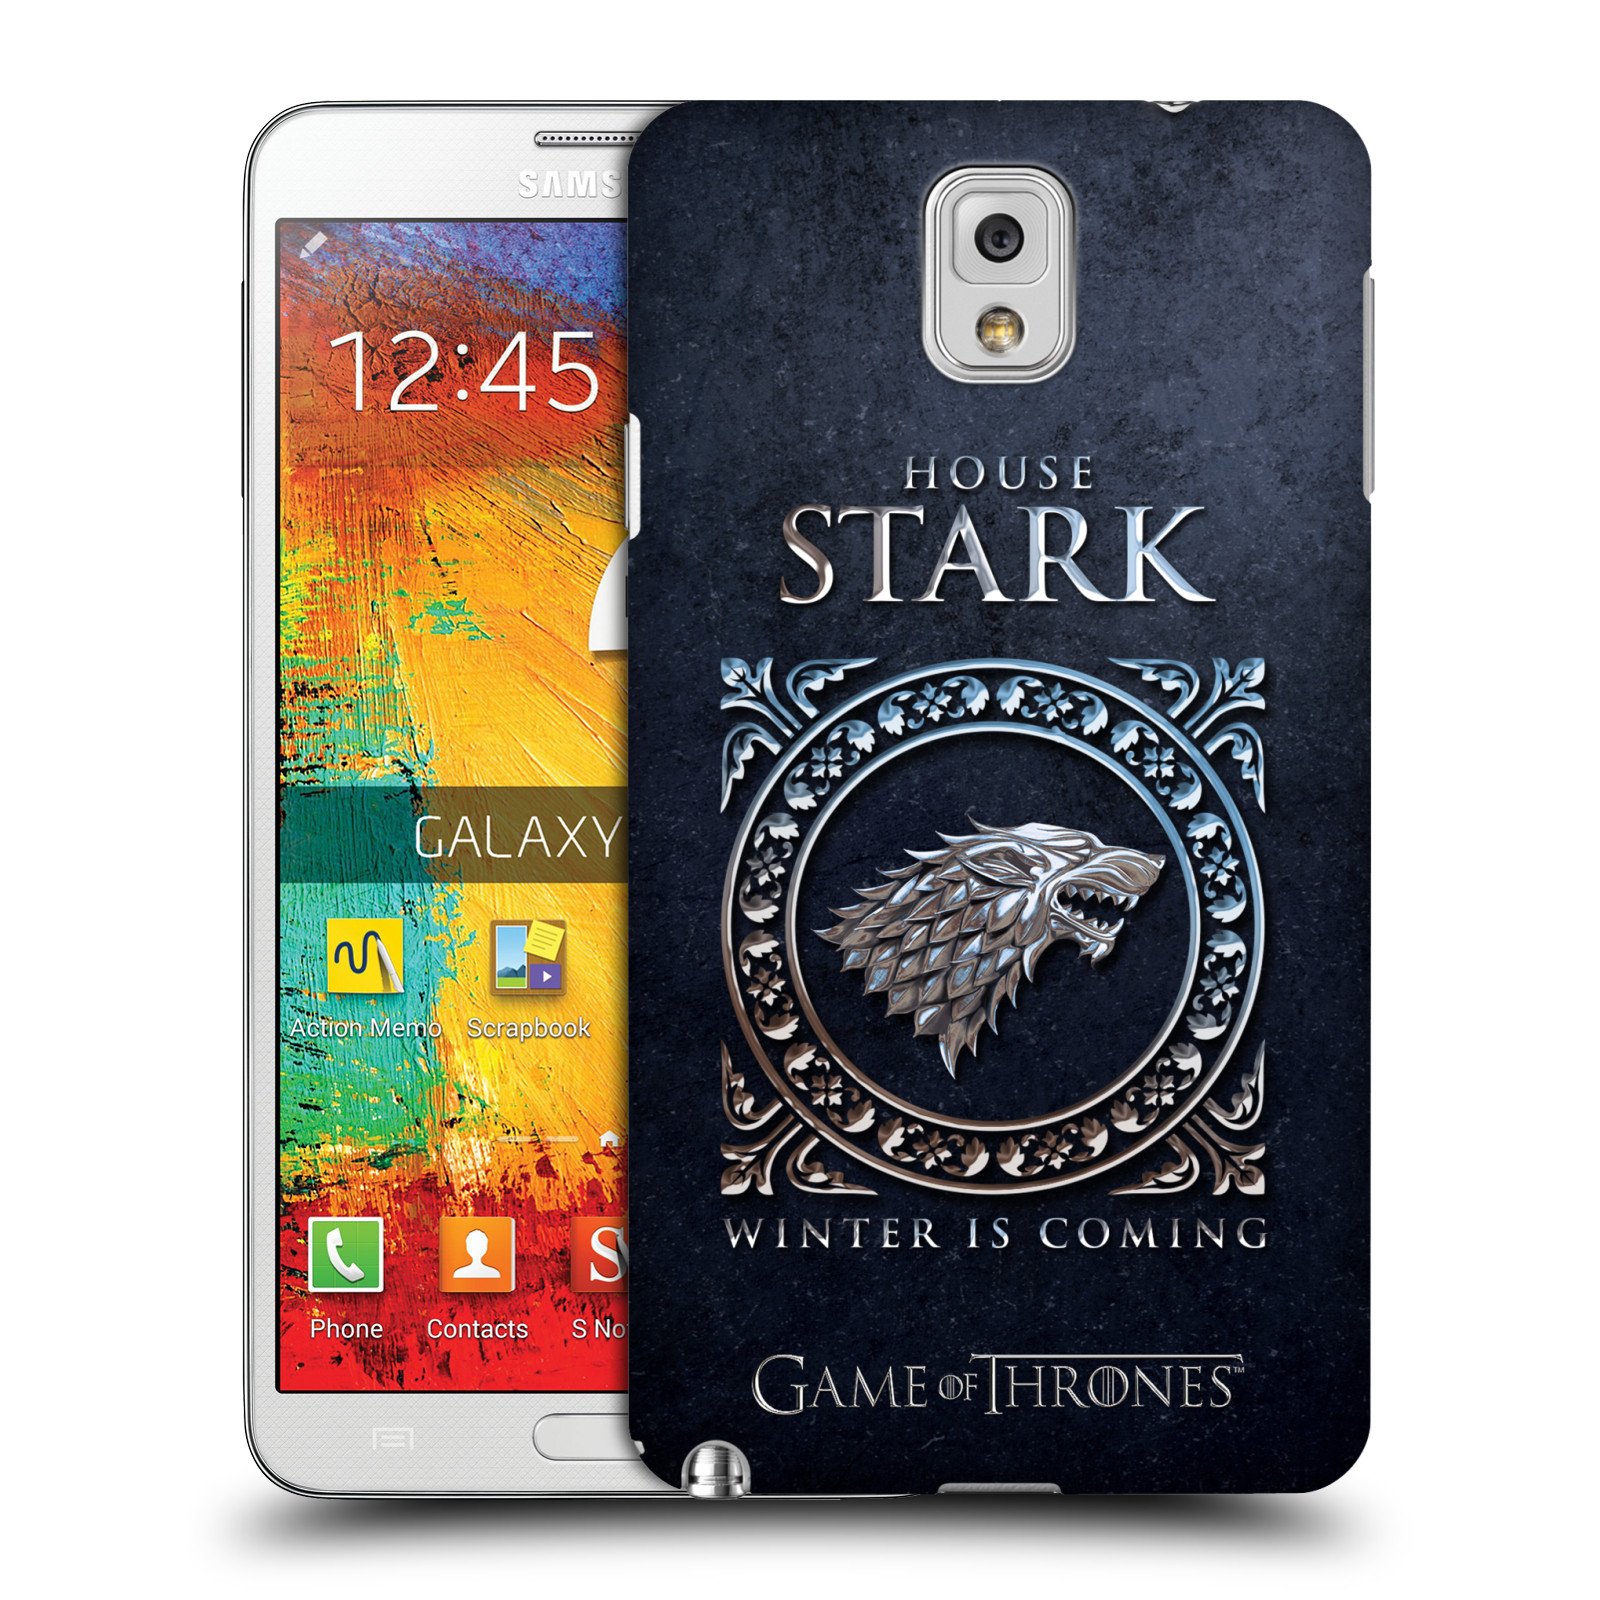 HBO-GAME-OF-THRONES-SYMBOLES-METALLIQUES-ETUI-COQUE-POUR-SAMSUNG-TELEPHONES-2